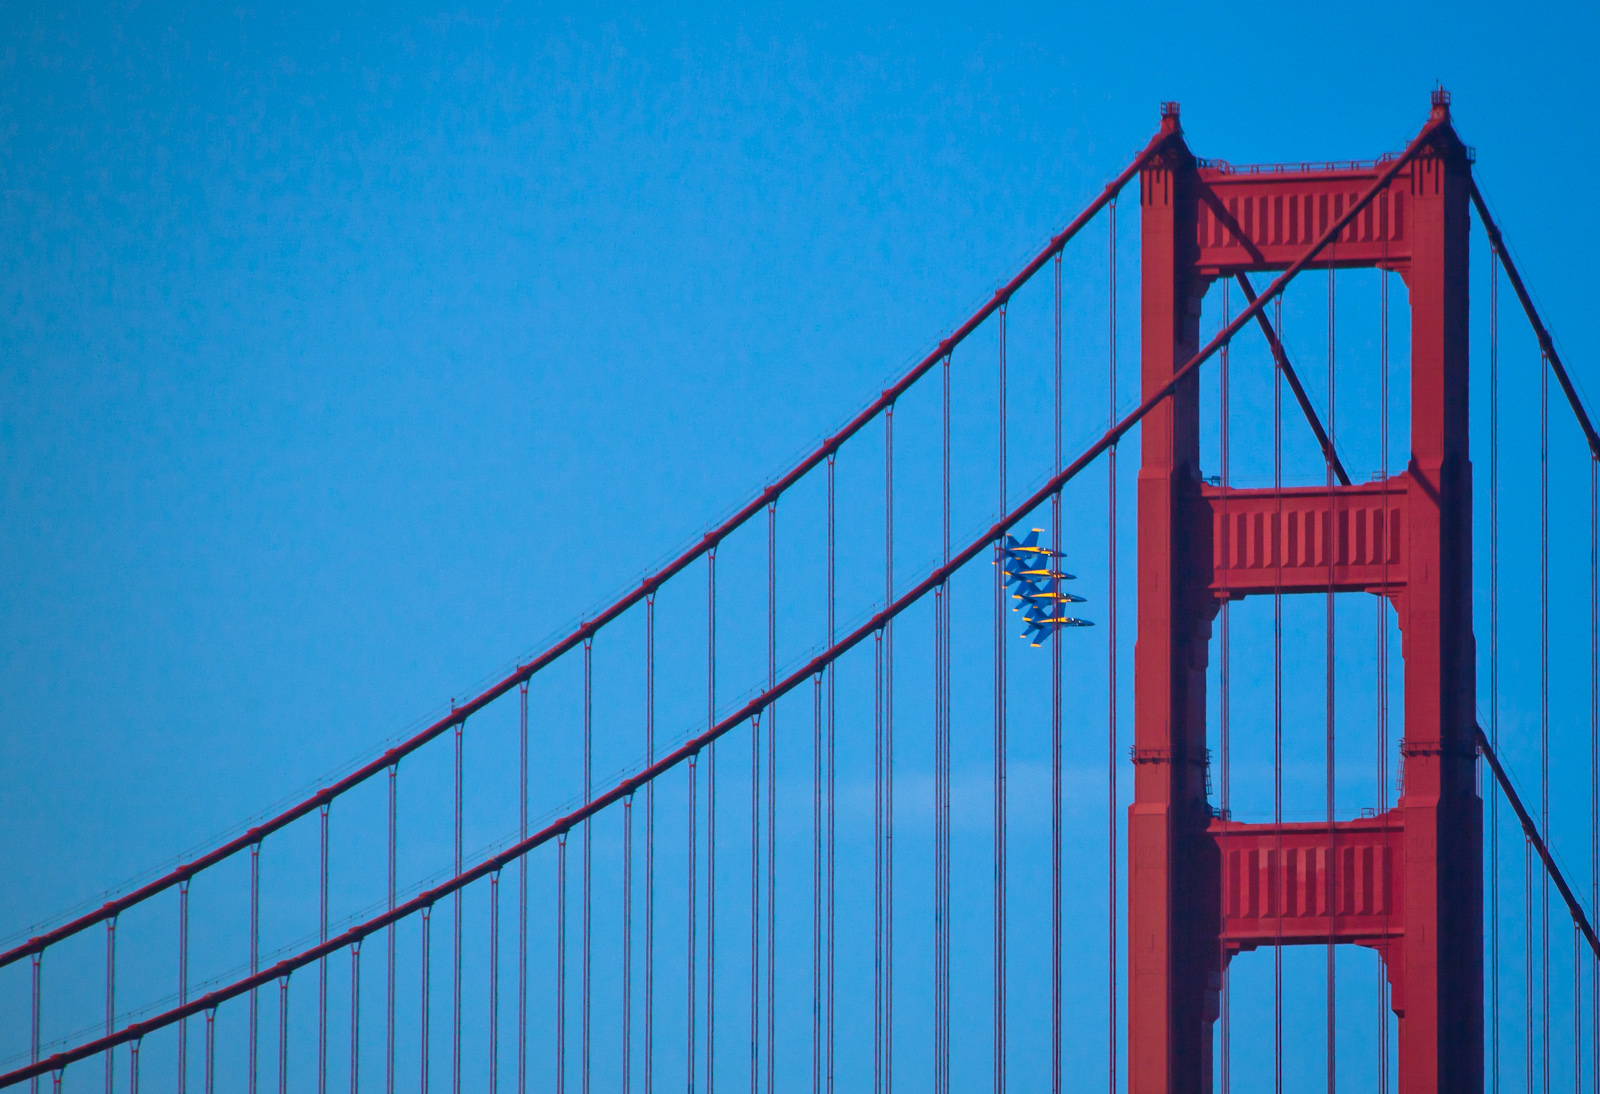 A View of the Golden Gate Bridge with the Blue Angels